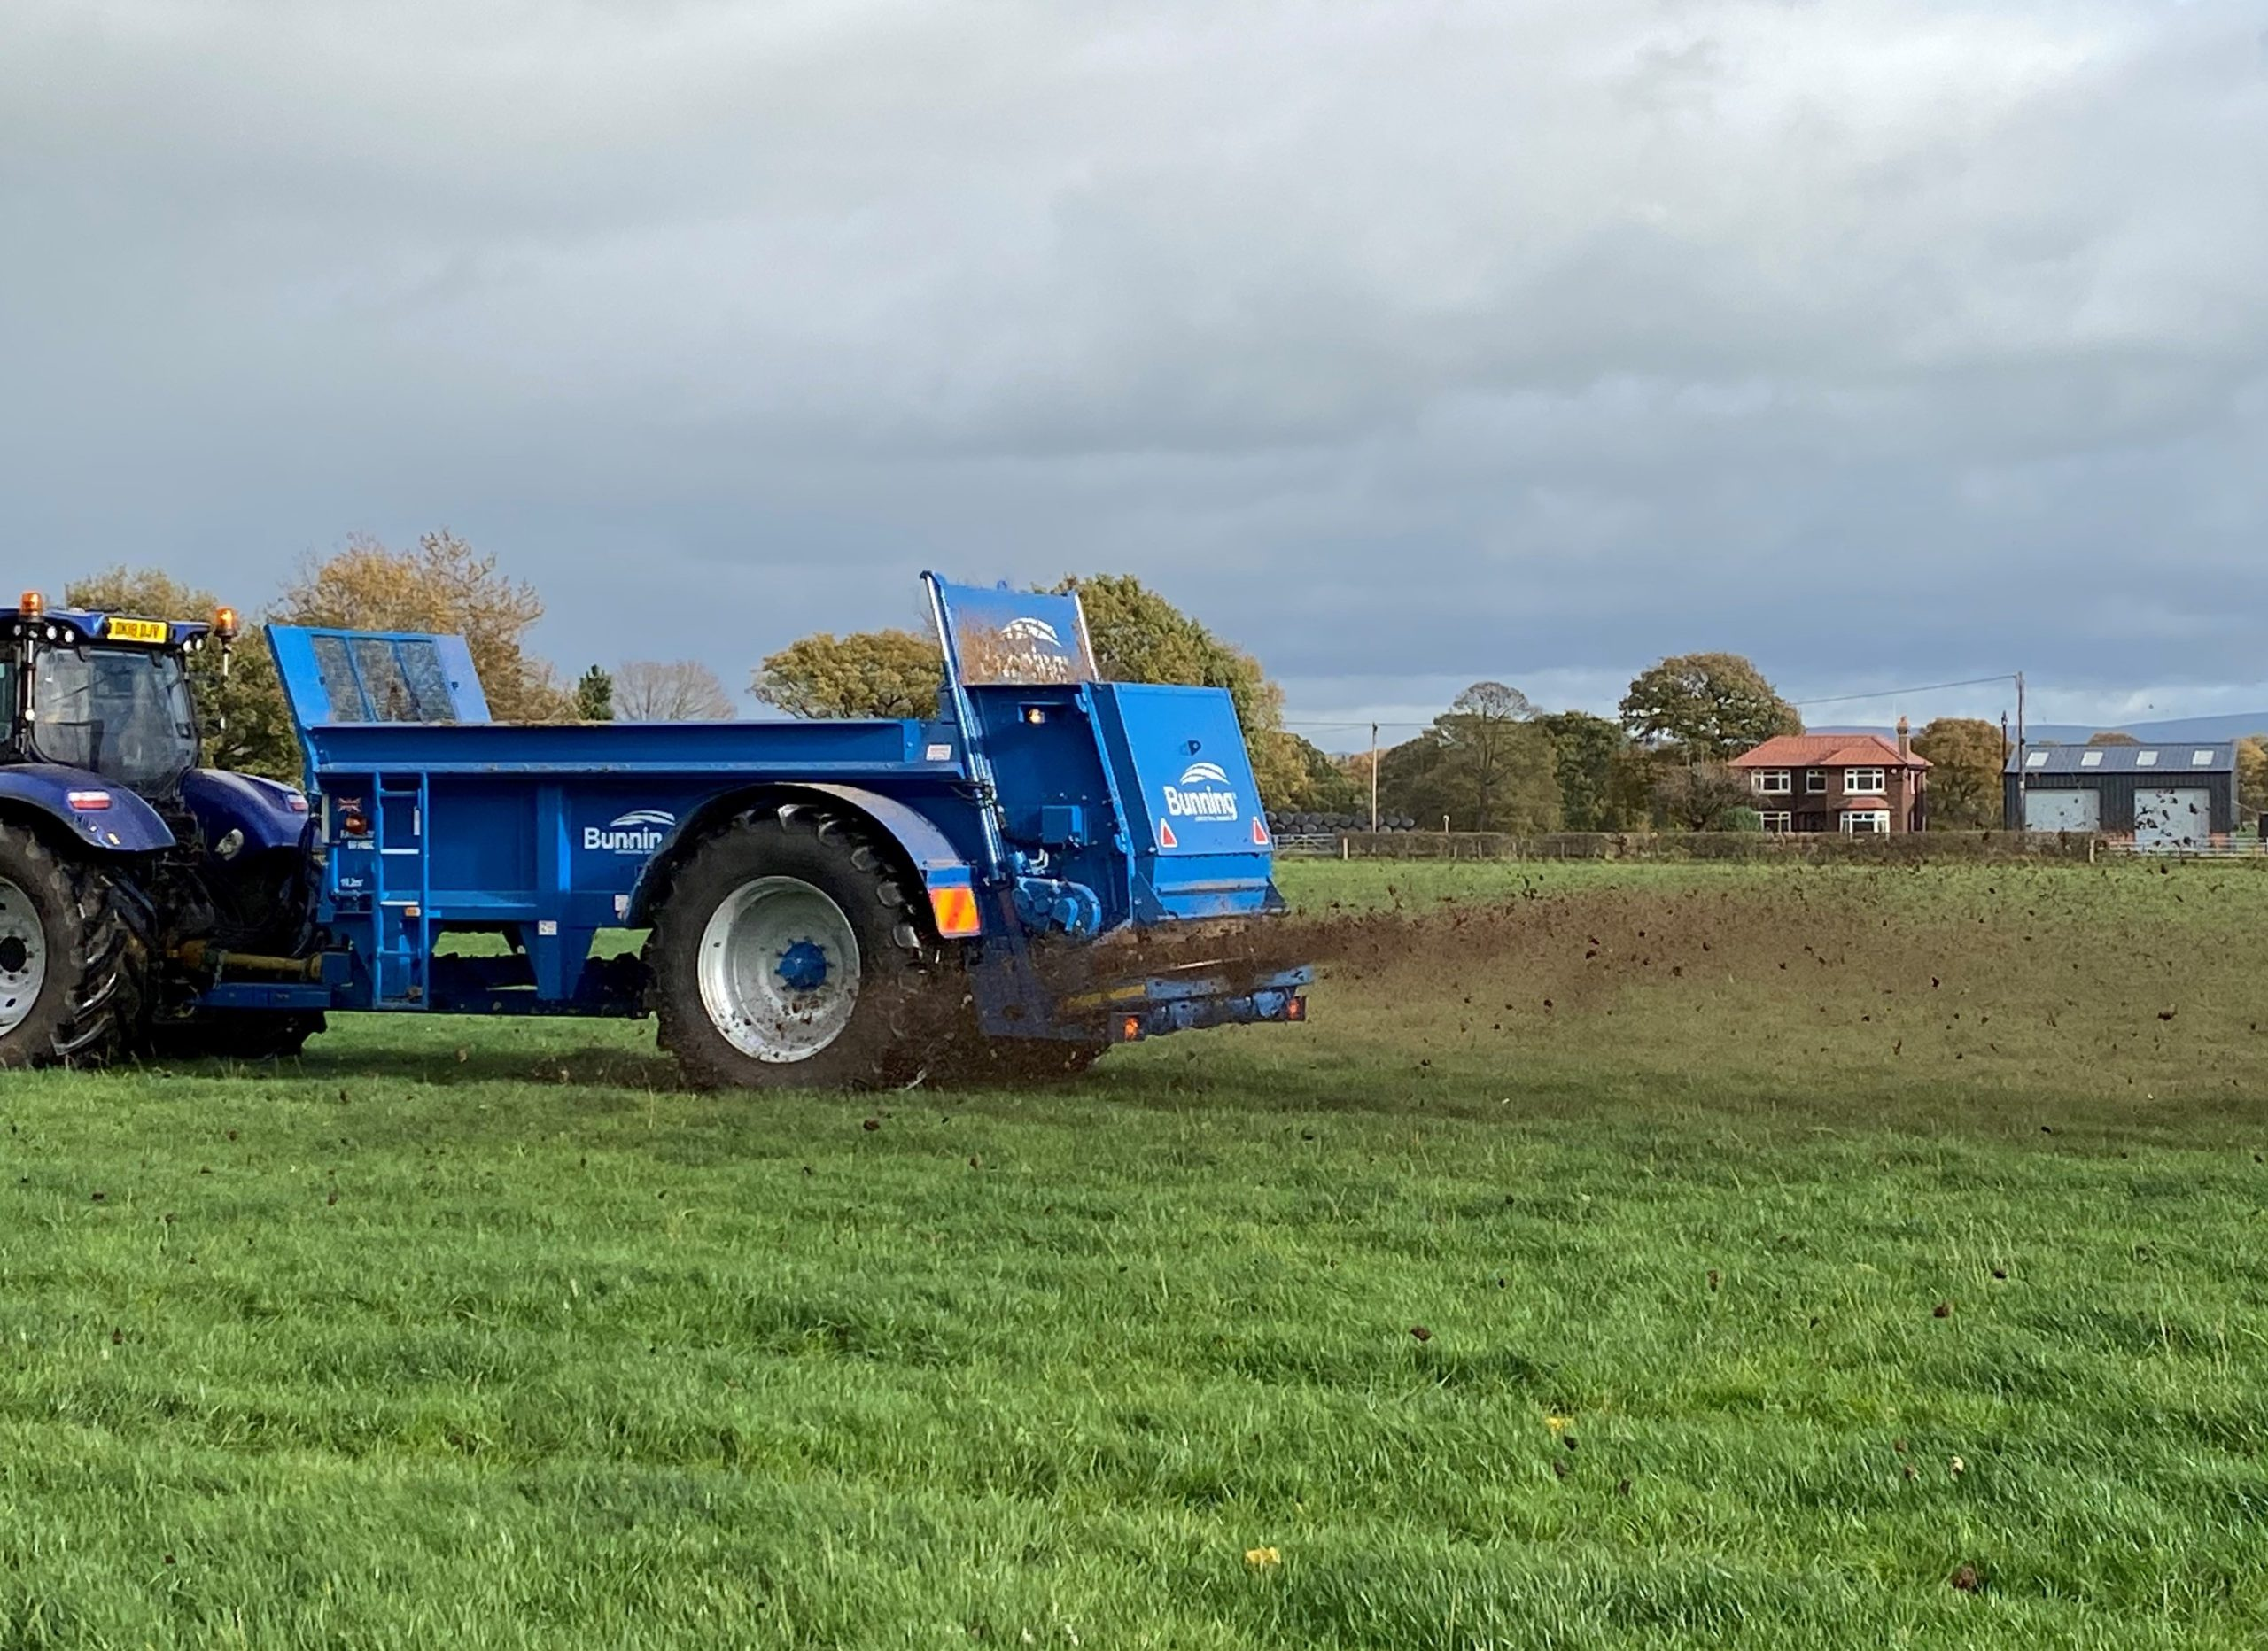 Farmstar 80 HBD with slurry door, slurry door indicator, 240mm steel extensions, ISOCAN weigh cell system, rear flashing beacons, mudguards and lights and 520/85 R38 wheels